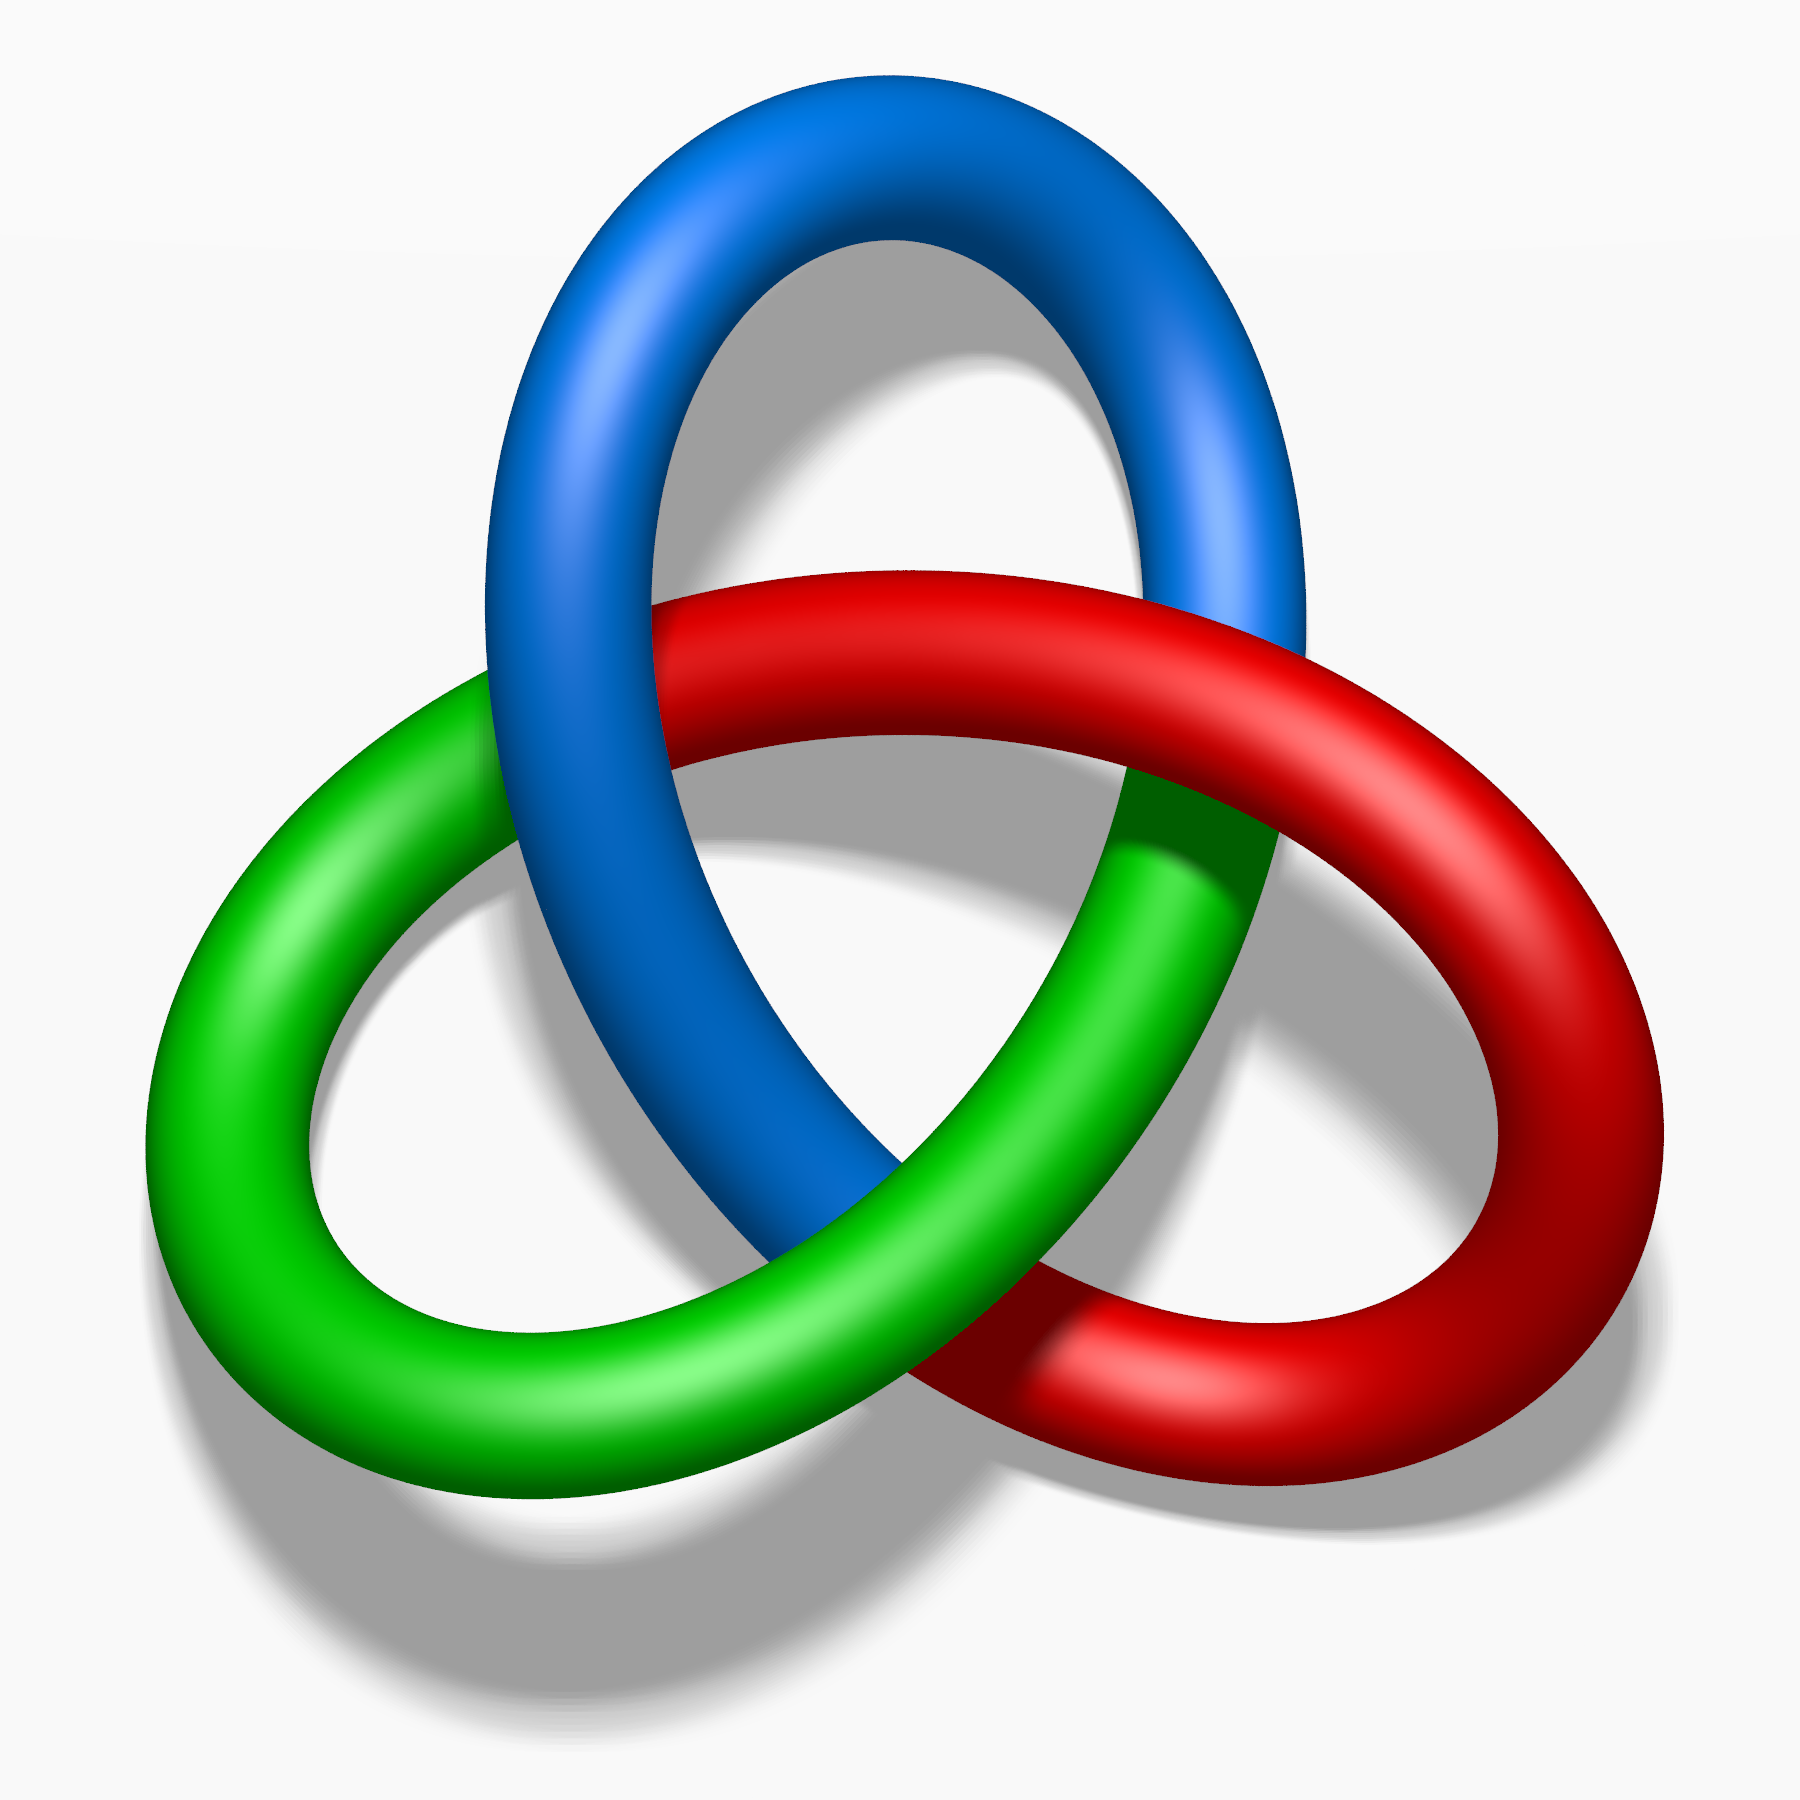 File:Tricoloring.png - Wikipedia, the free encyclopedia